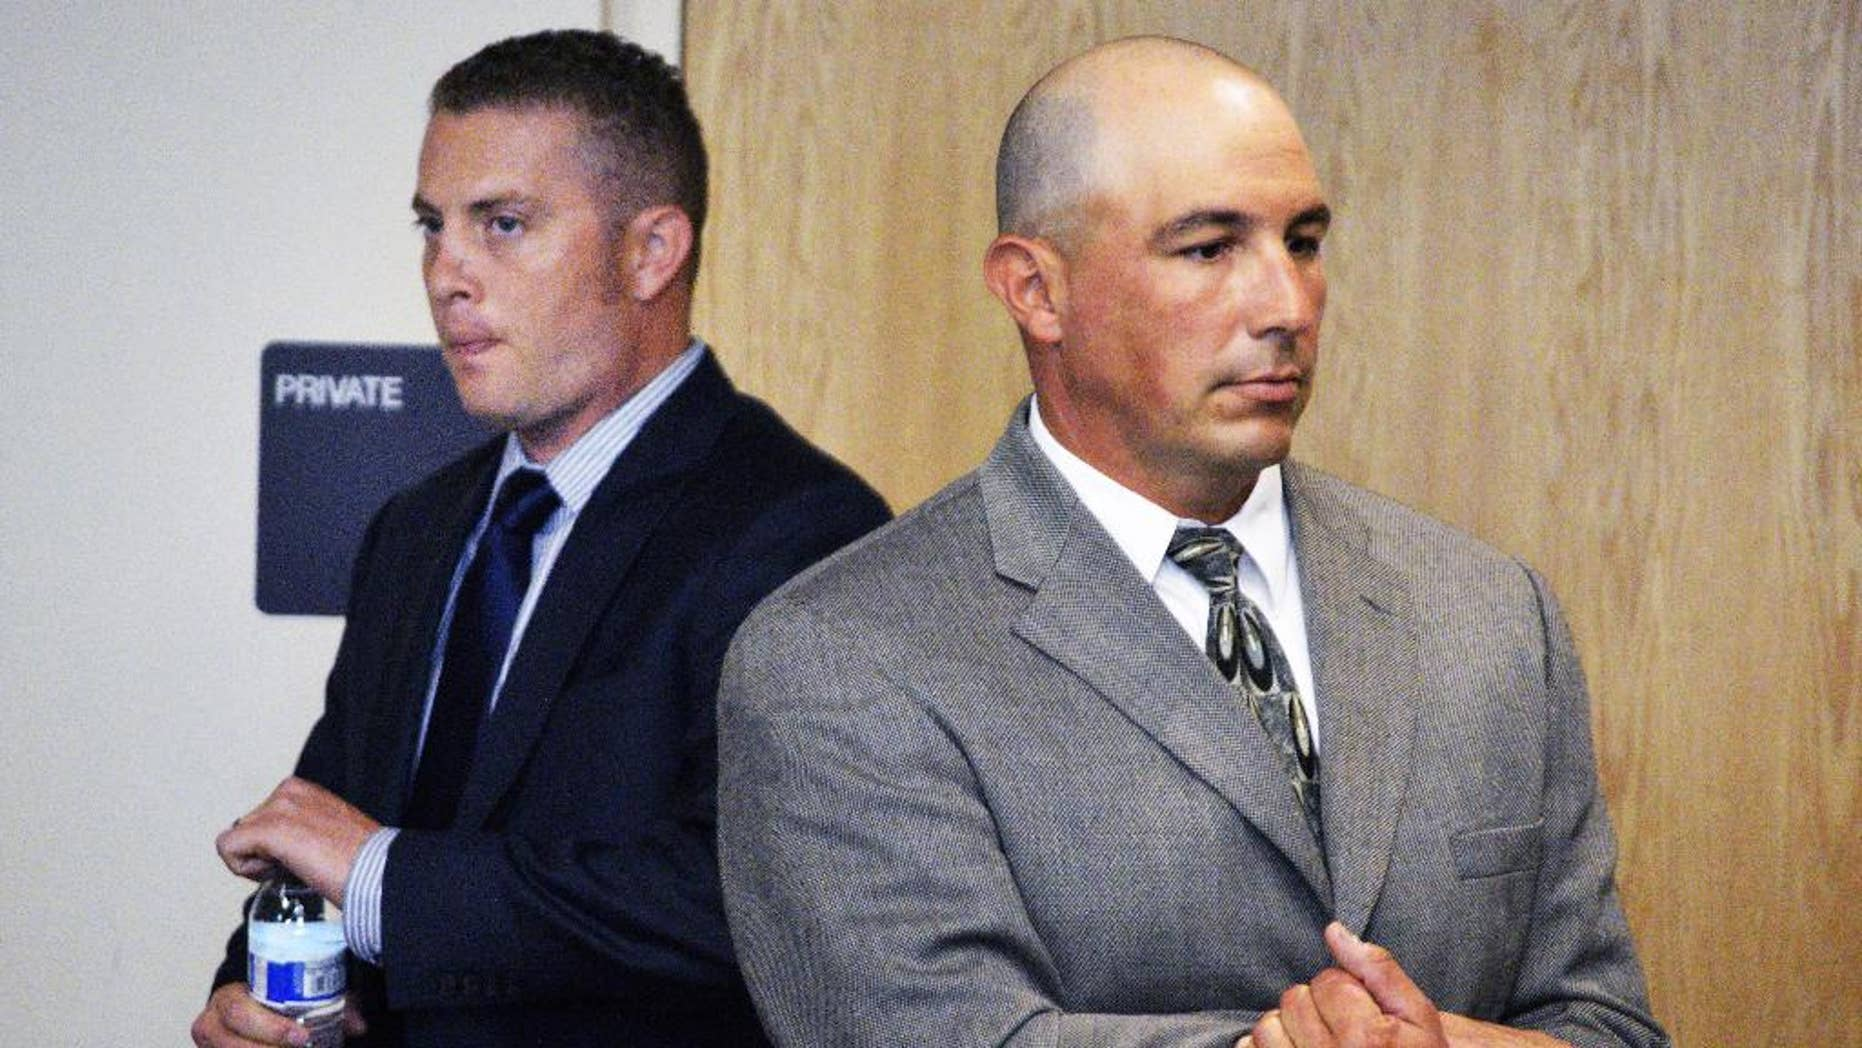 Former Albuquerque Detective Keith Sandy, center, listens to a special prosecutor tell a judge at a preliminary hearing that he unlawfully shot a homeless camper who posed no threat in Albuquerque, N.M. on Monday, Aug. 3, 2015. Sandy and Albuquerque officer Dominique Perez are facing second-degree murder charges in the 2014 fatal shooting death of 38-year-old James Boyd. (AP Photo/Russell Contreras)